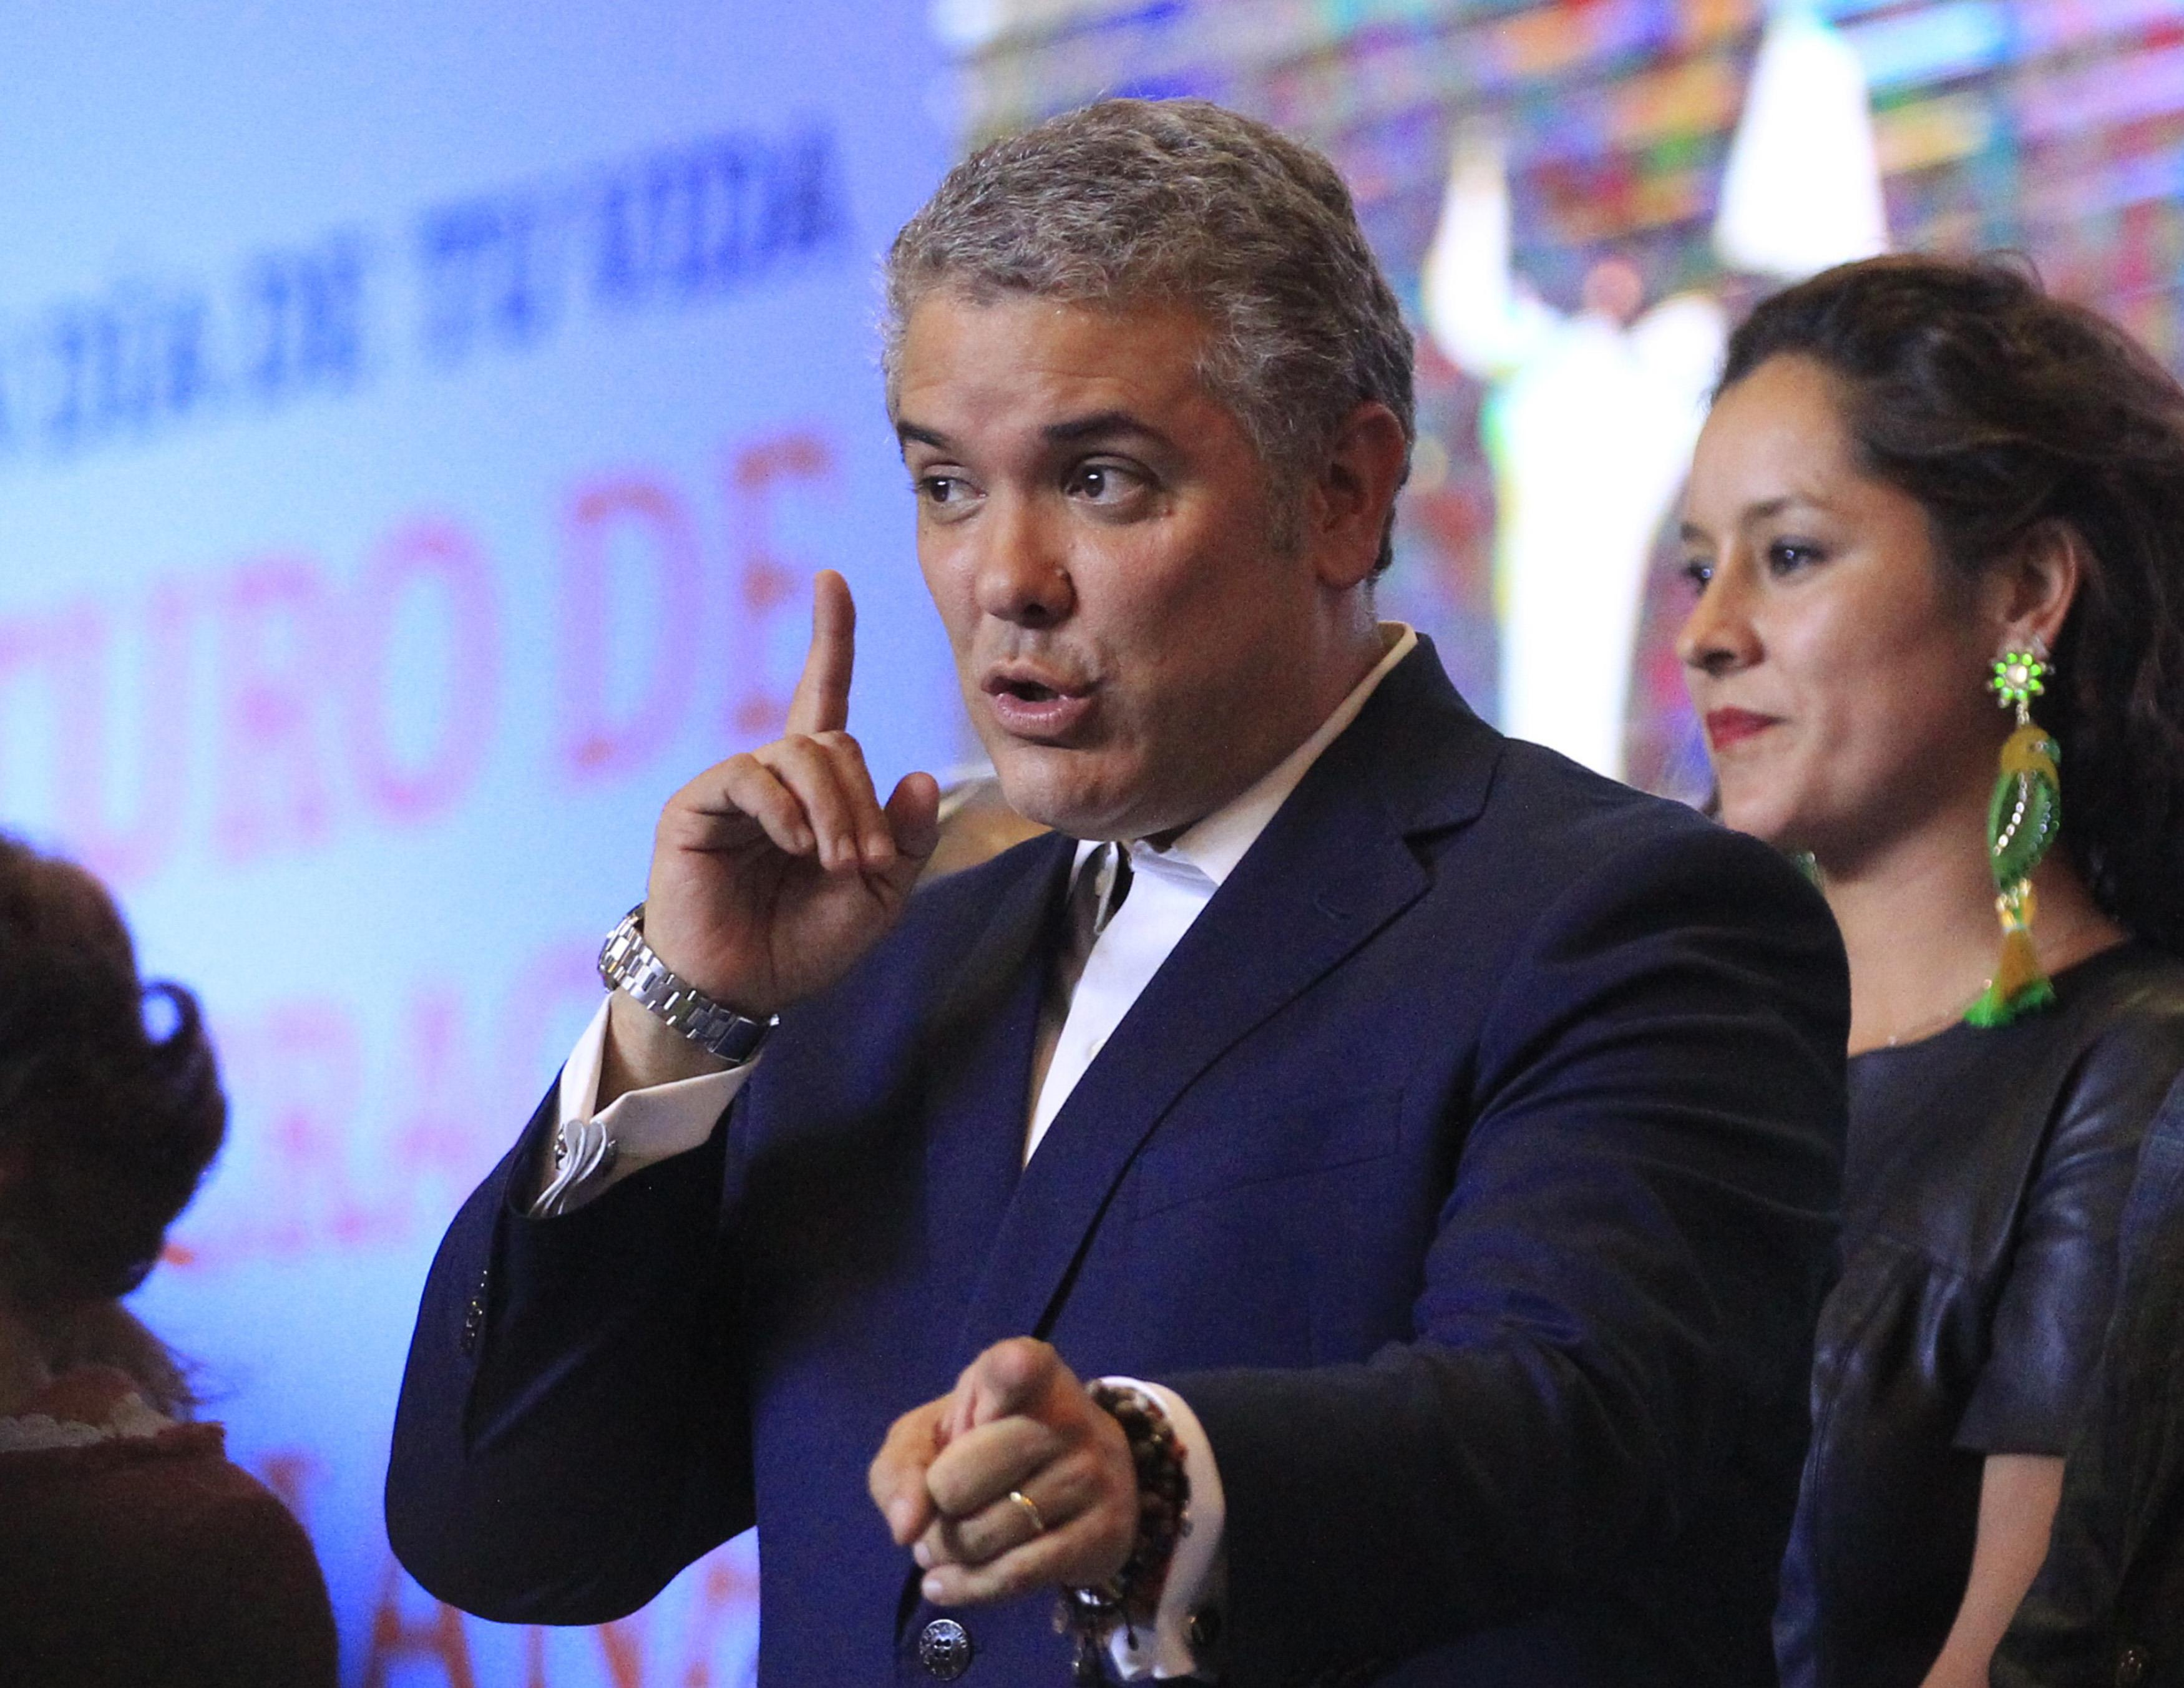 IVAN DUQUE: UNASUR ES CAJA DE RESONANCIA DE LA DICTADURA VENEZOLANA Destacado